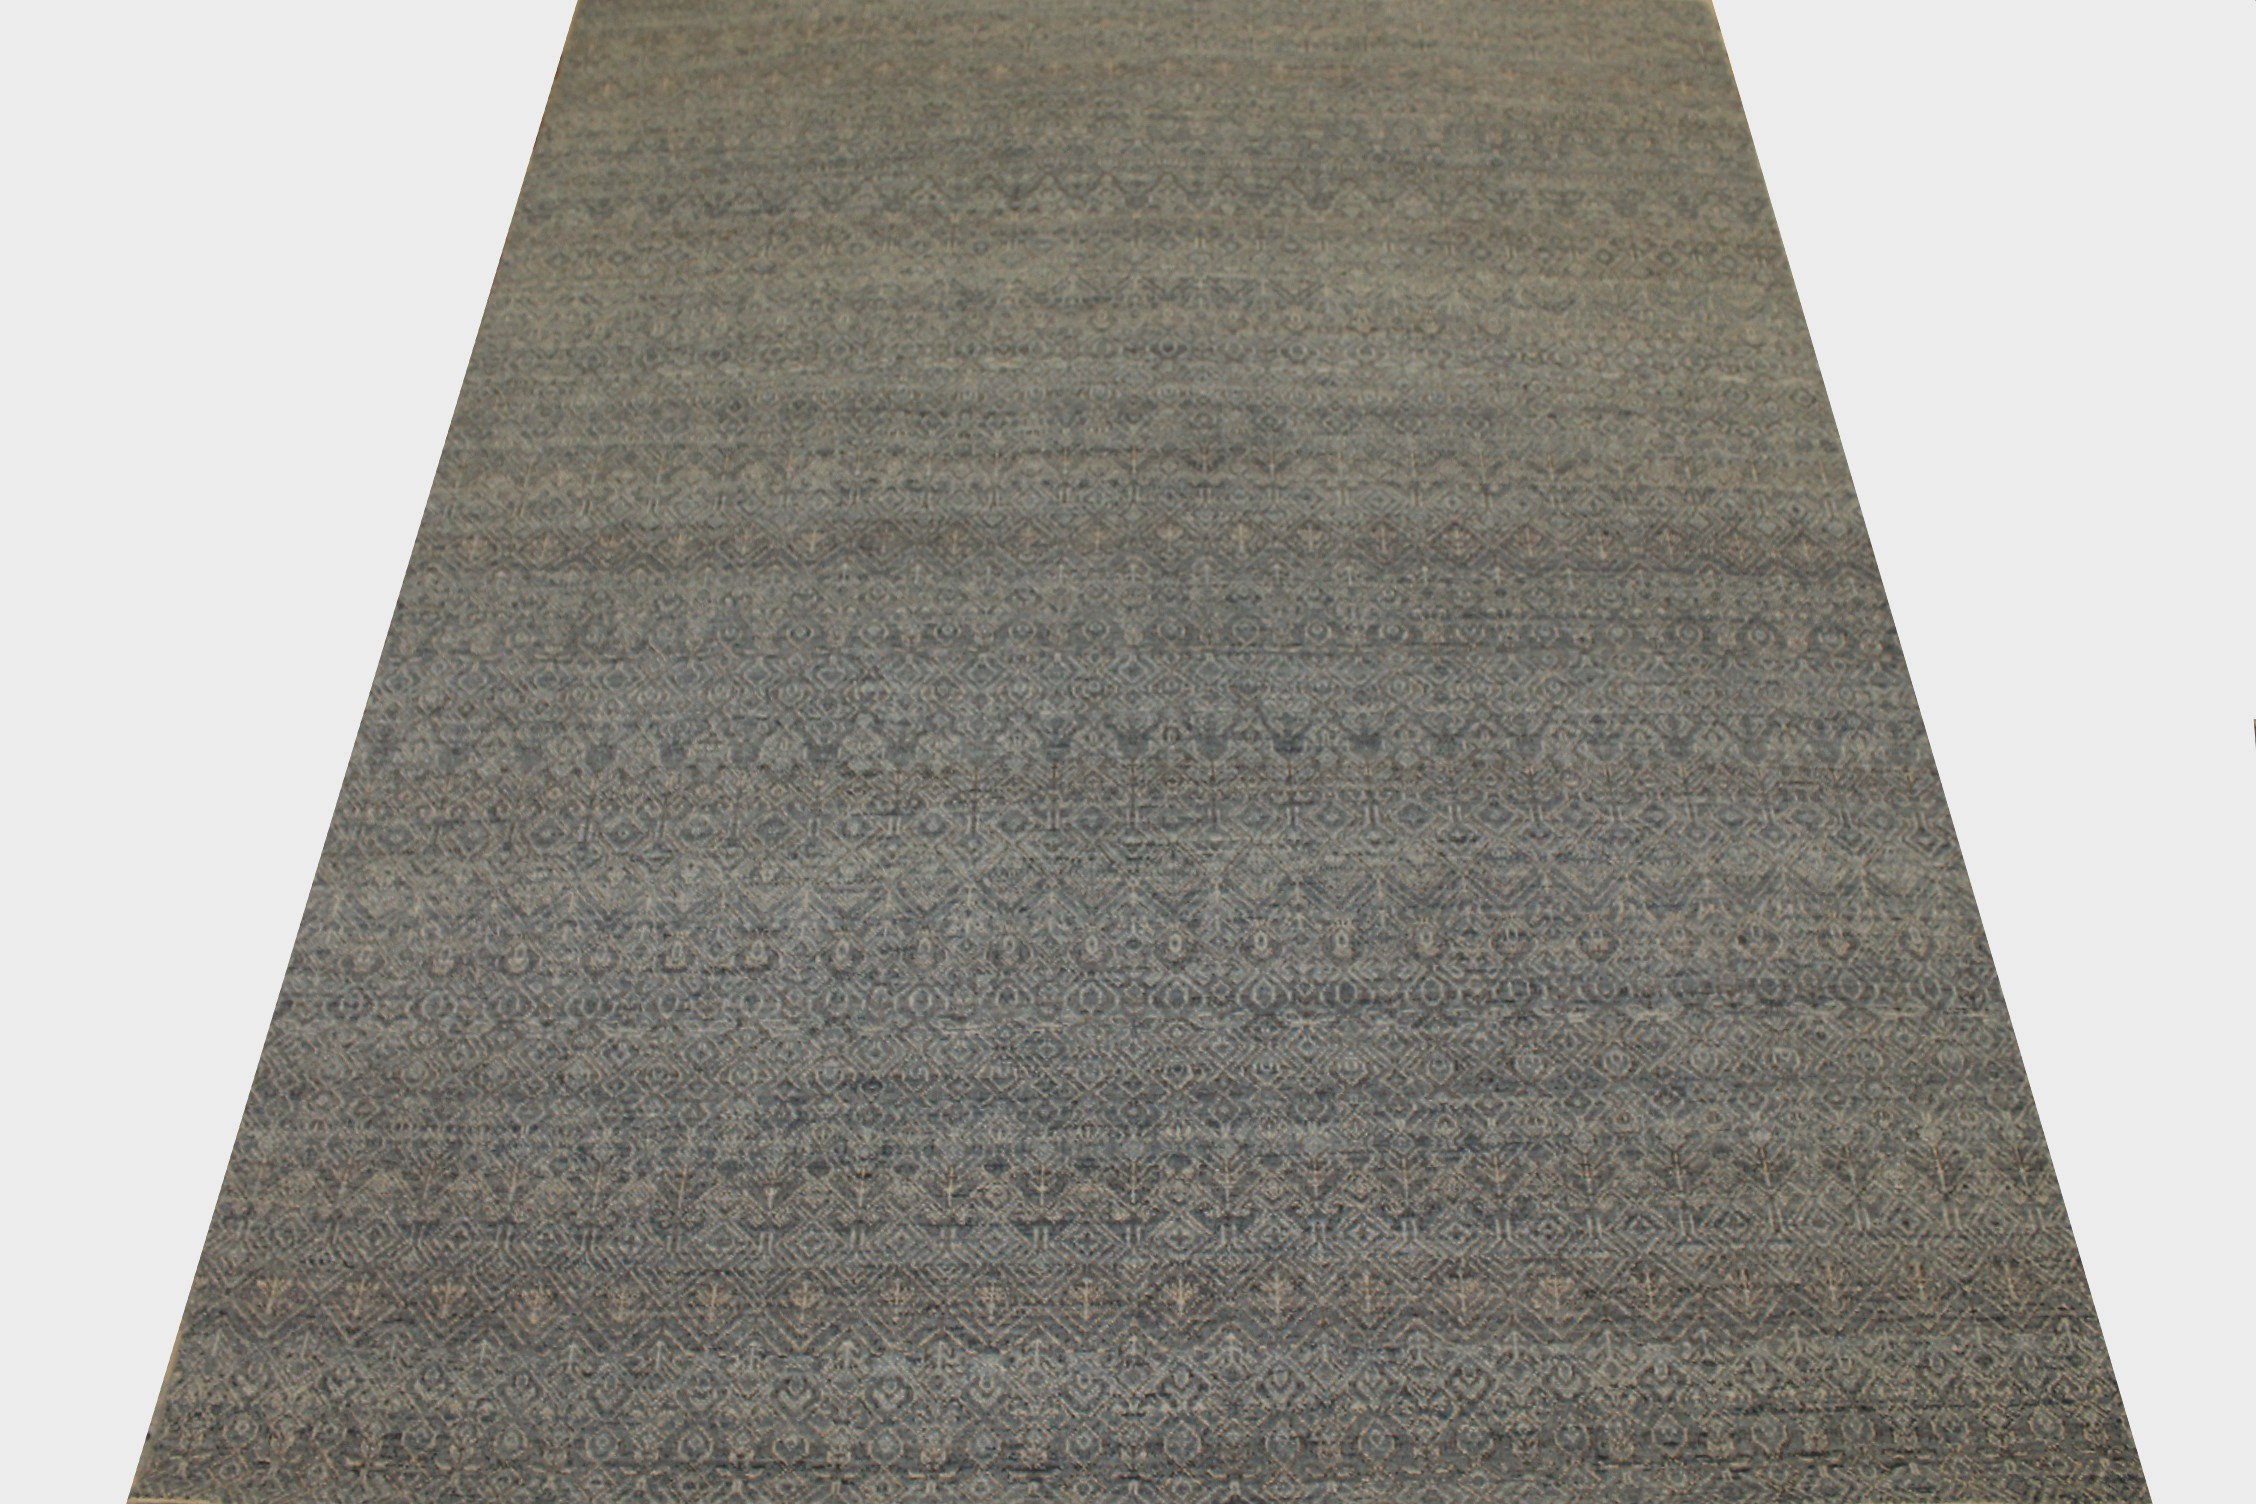 8x10 Casual Hand Knotted Wool Area Rug - MR024269